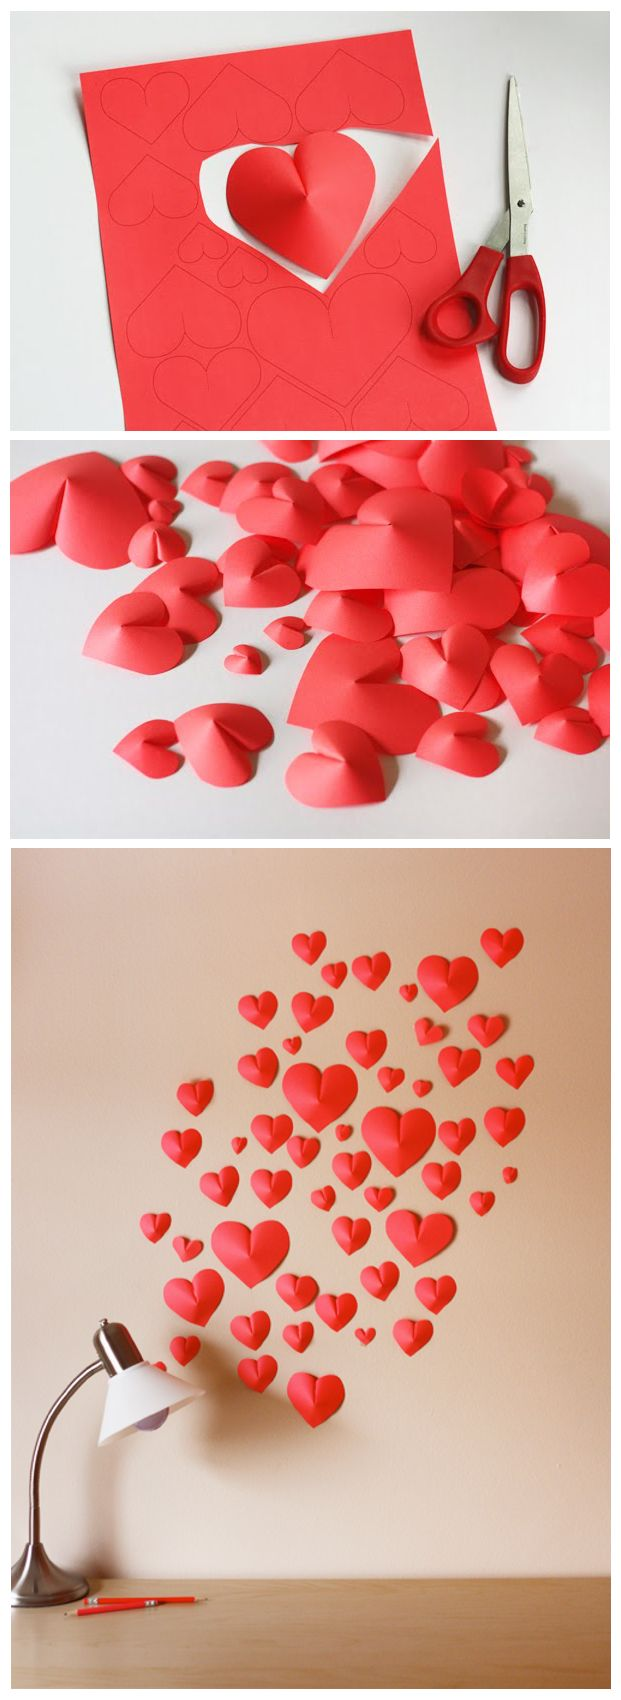 Make a wall of paper hearts! Fun idea for Valentines Day.